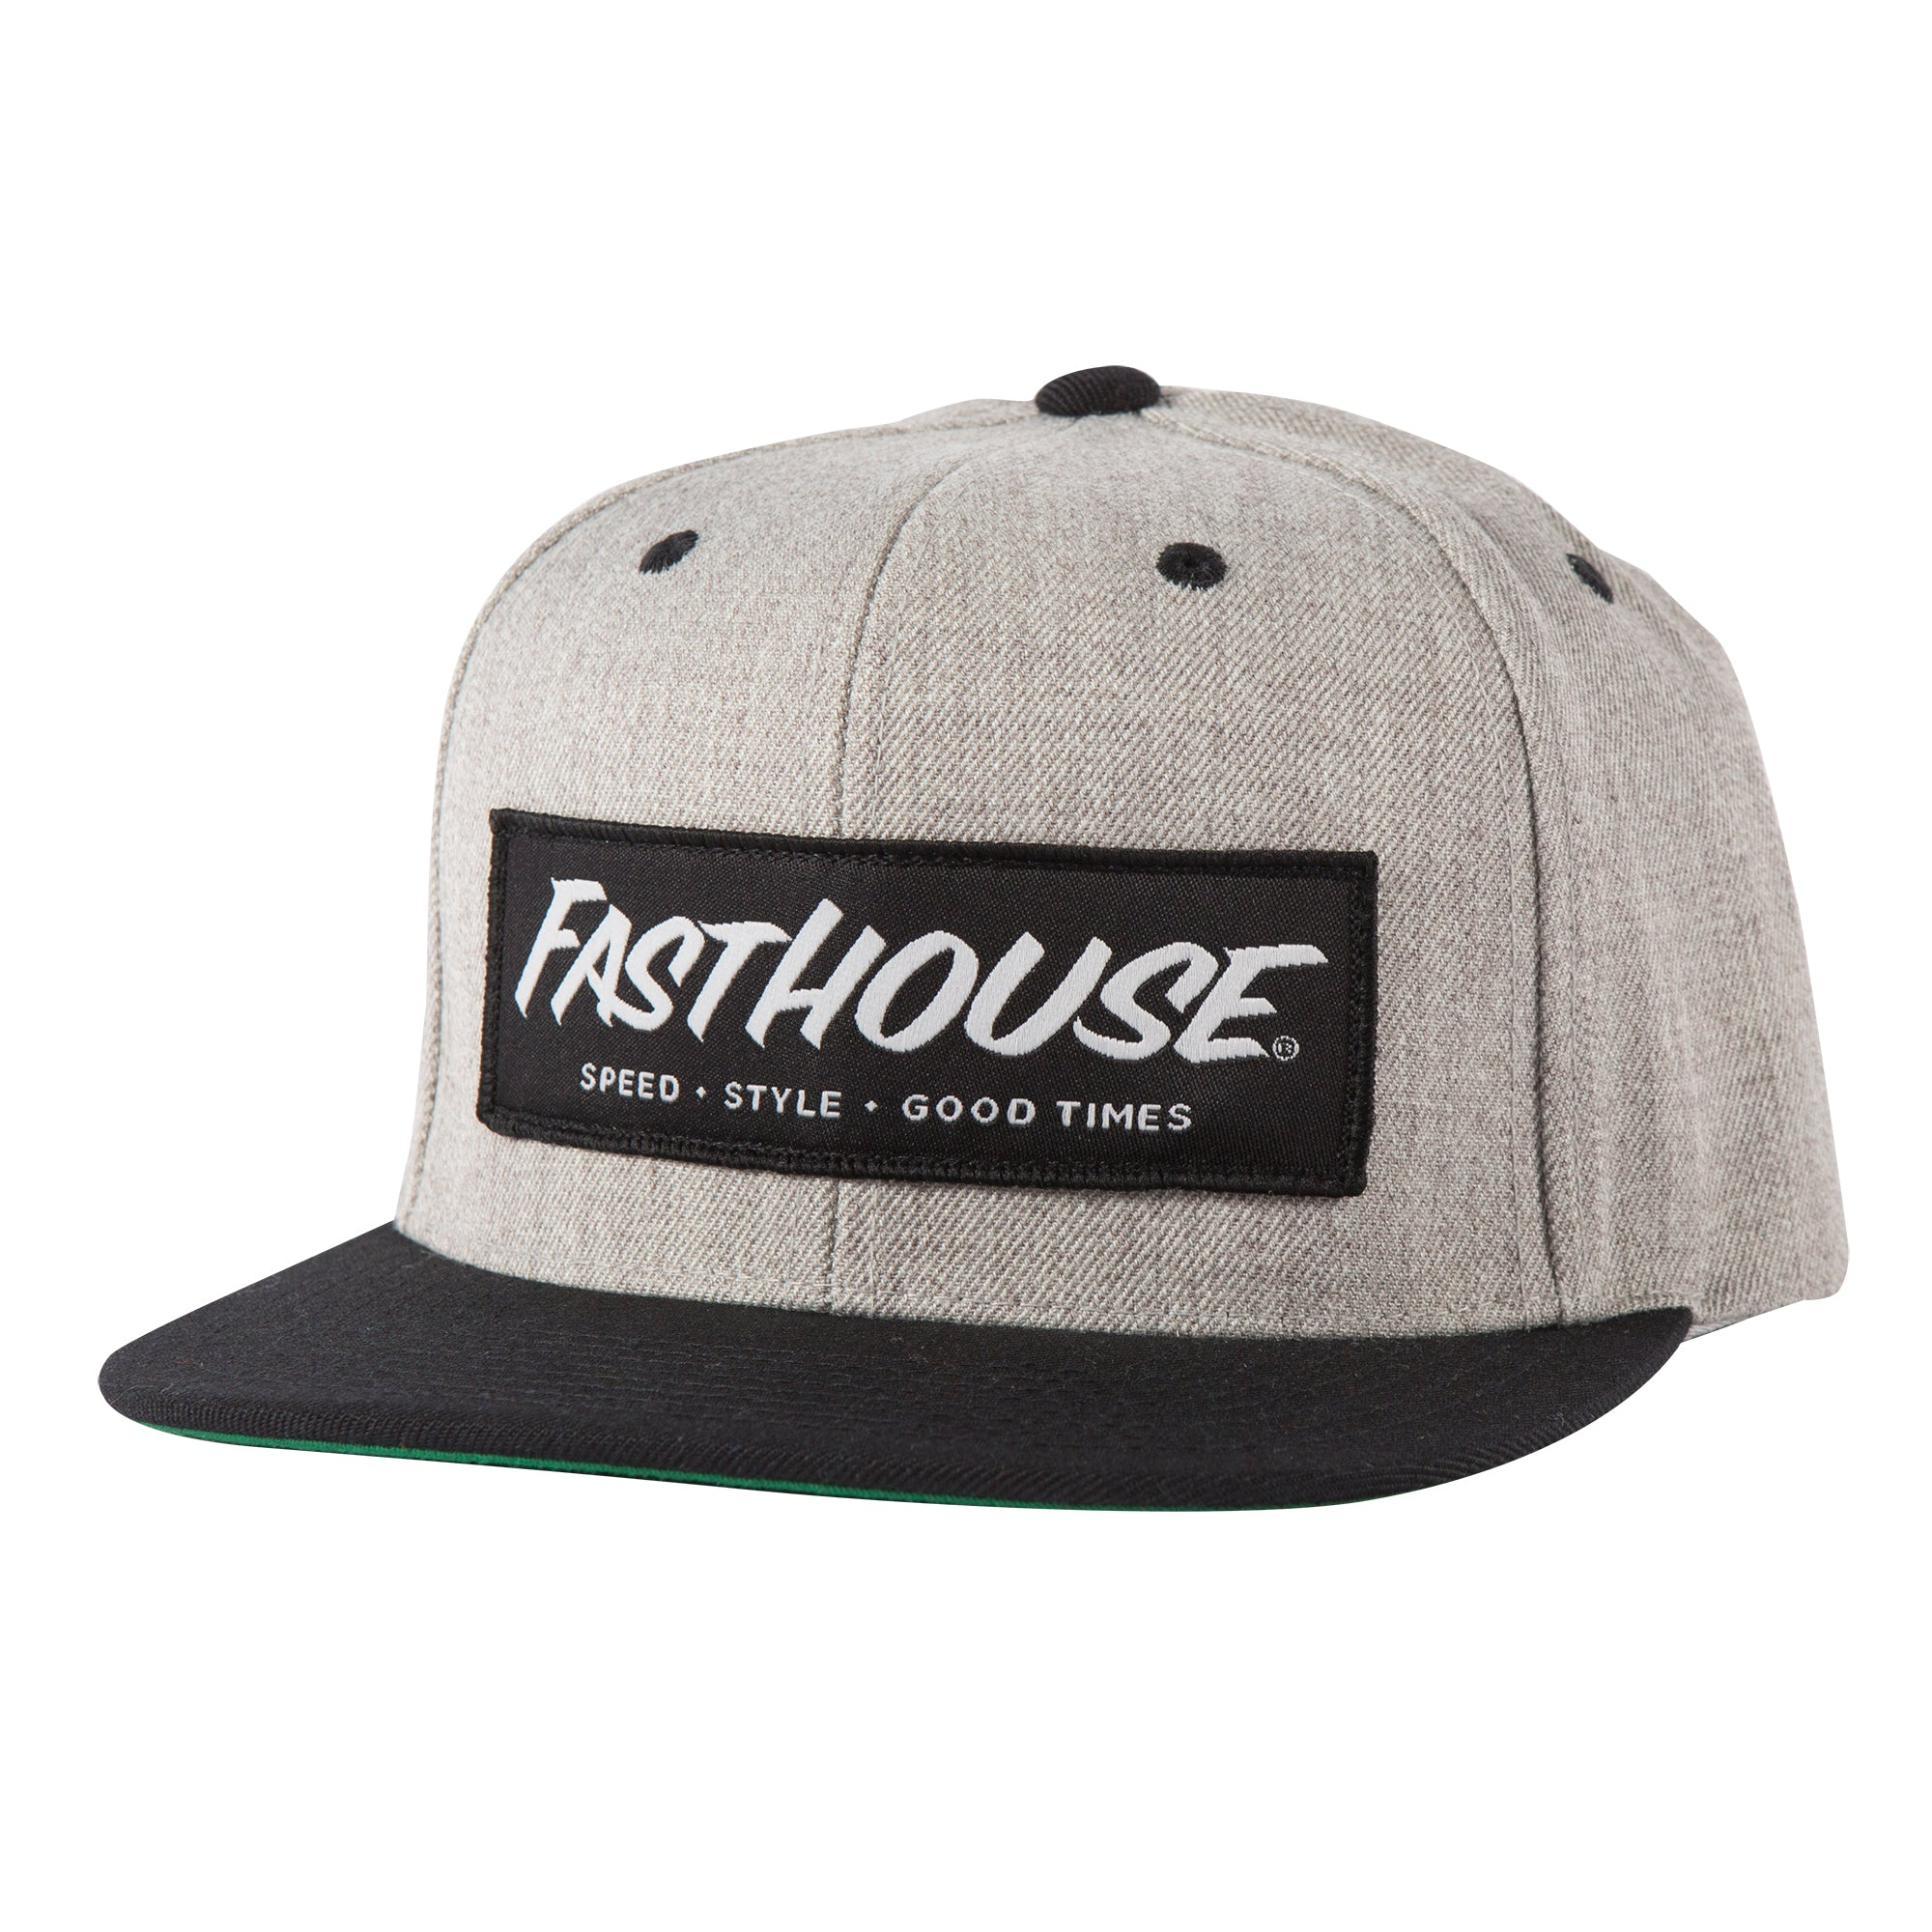 Fasthouse - Speed Style Good Times Hat - Grey/Black